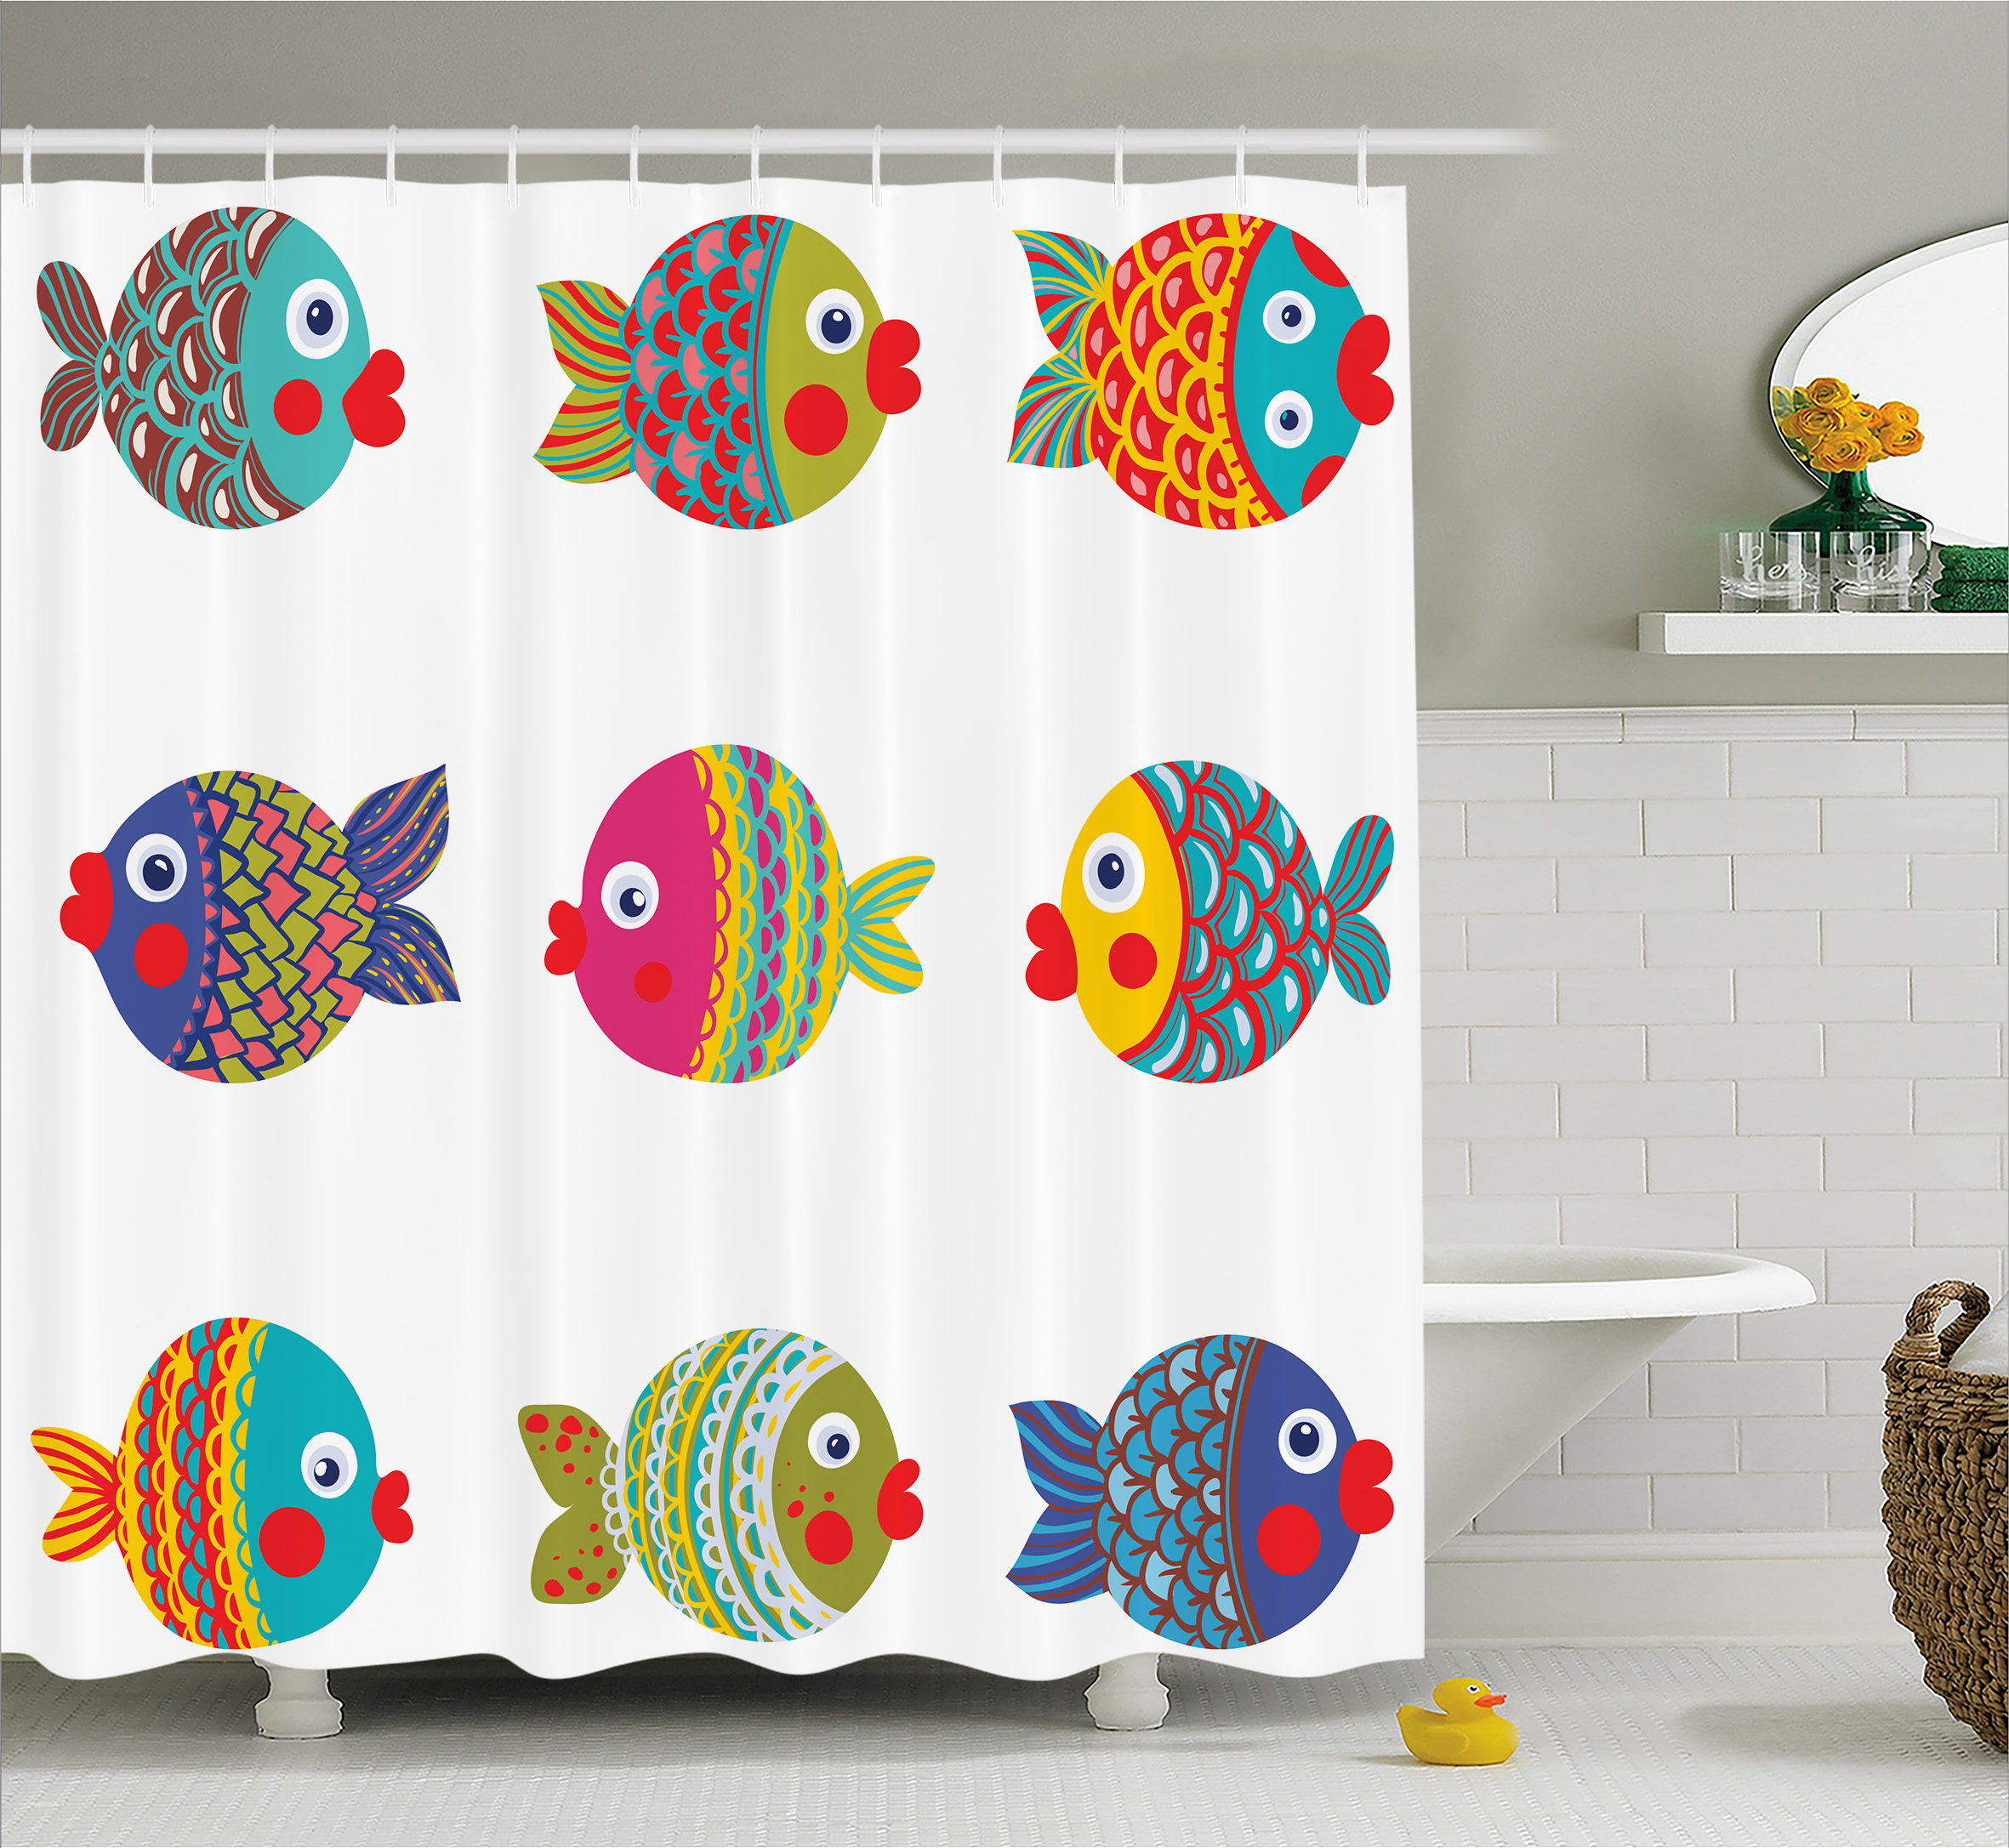 Ocean Animal Decor Shower Curtain, Boho Ethnic Featured Ornate Fish Gills Water Childish Kids Nursery Theme, Fabric Bathroom Set with Hooks, 69W X 70L Inches, Multi, by Ambesonne